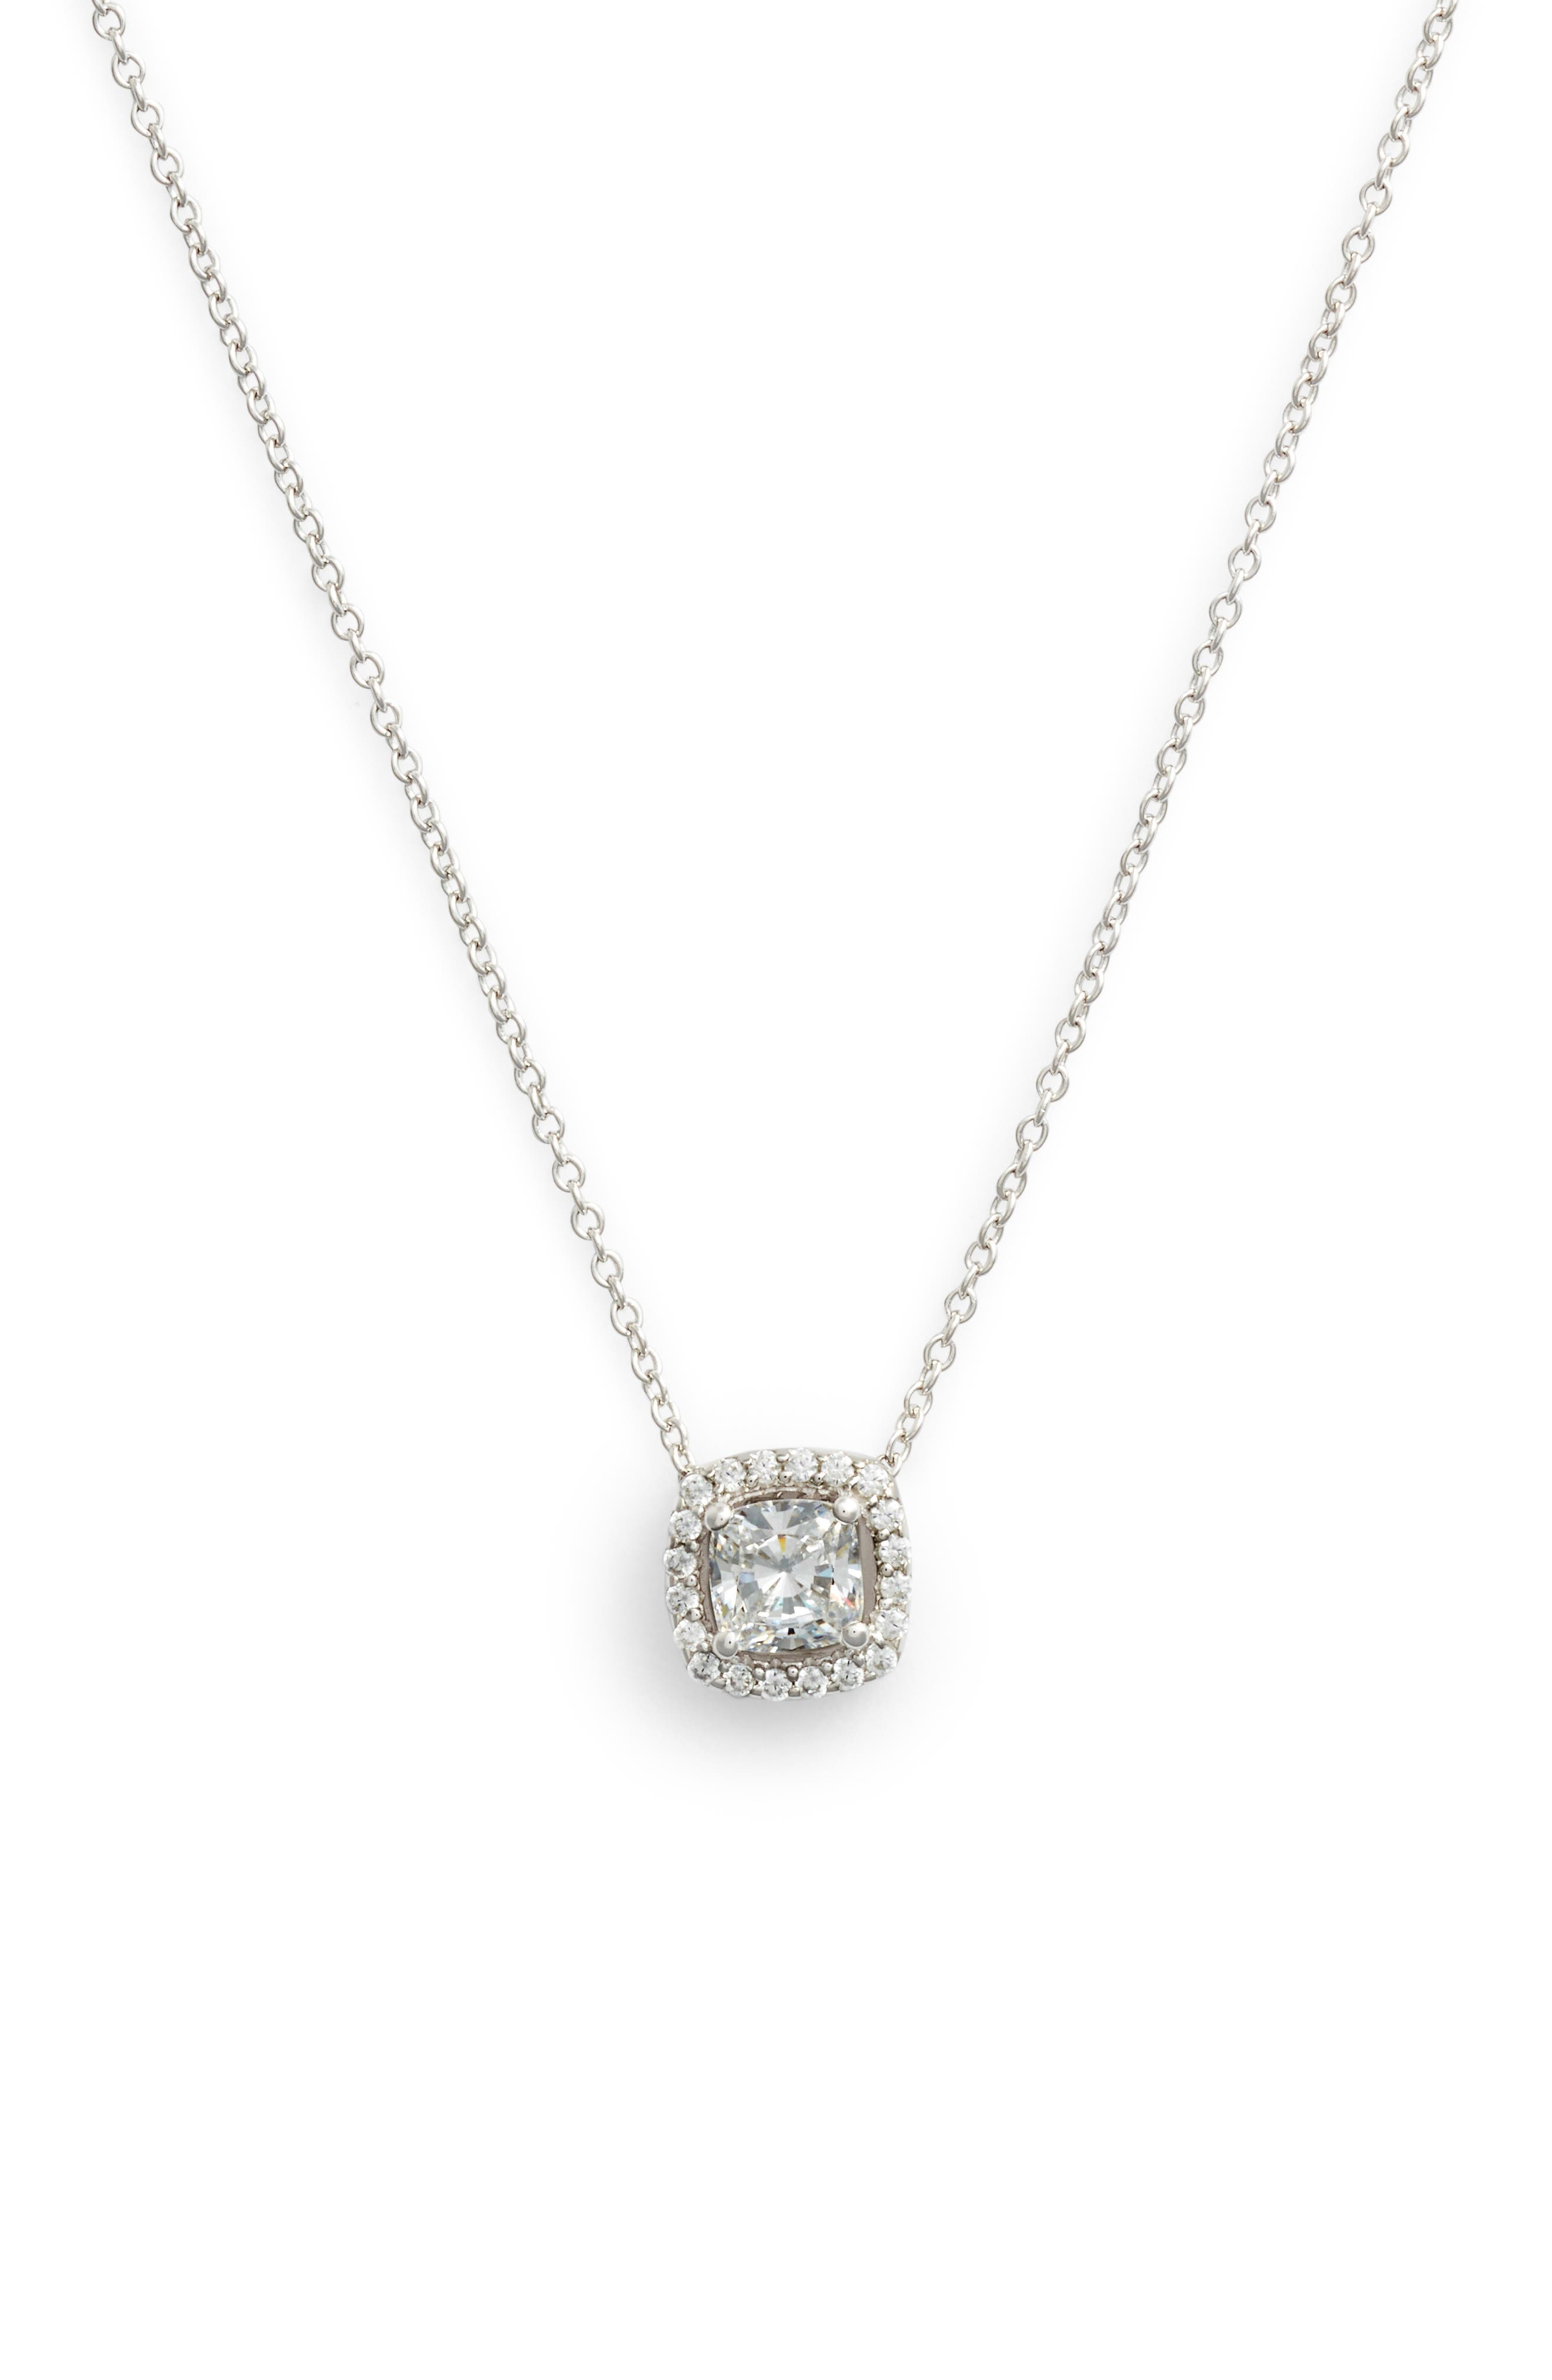 Cushion Cut Halo Necklace,                             Main thumbnail 1, color,                             Silver/ Clear